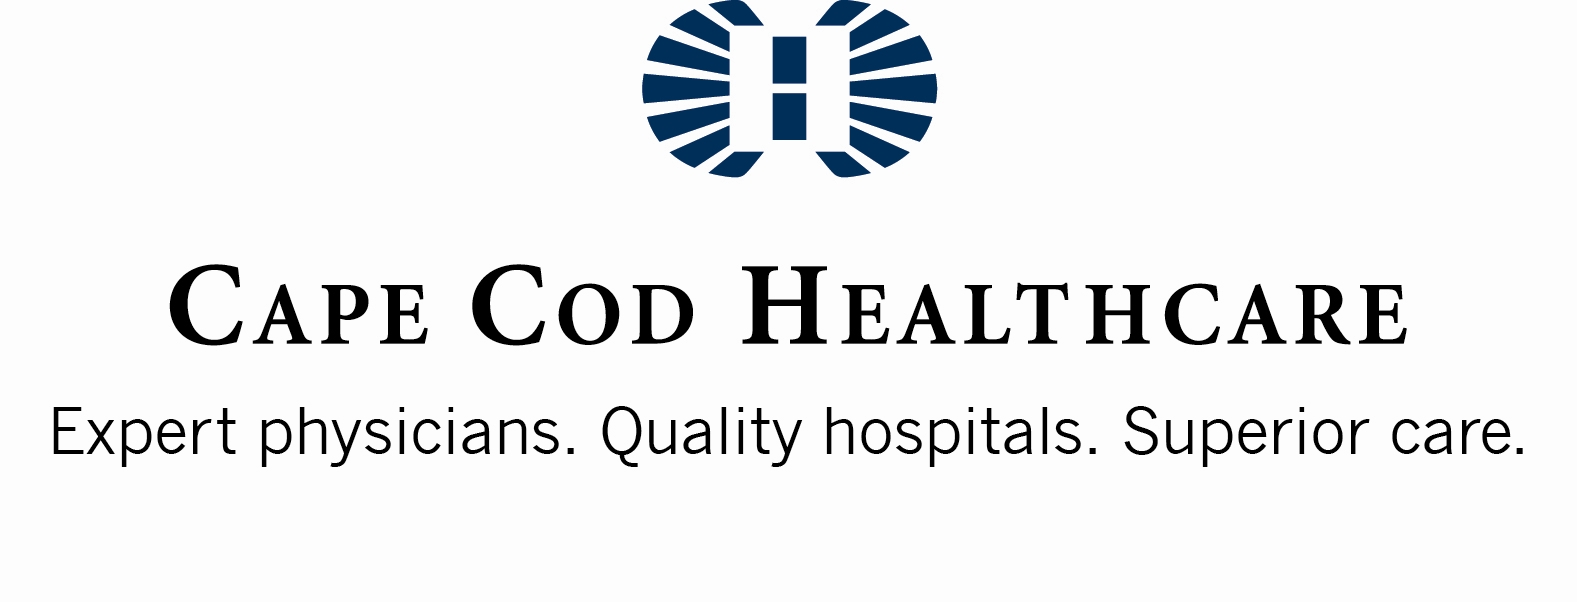 Audiologist - Cape Cod Healthcare - Cape Cod, Massachusetts - Live and Work Oceanside